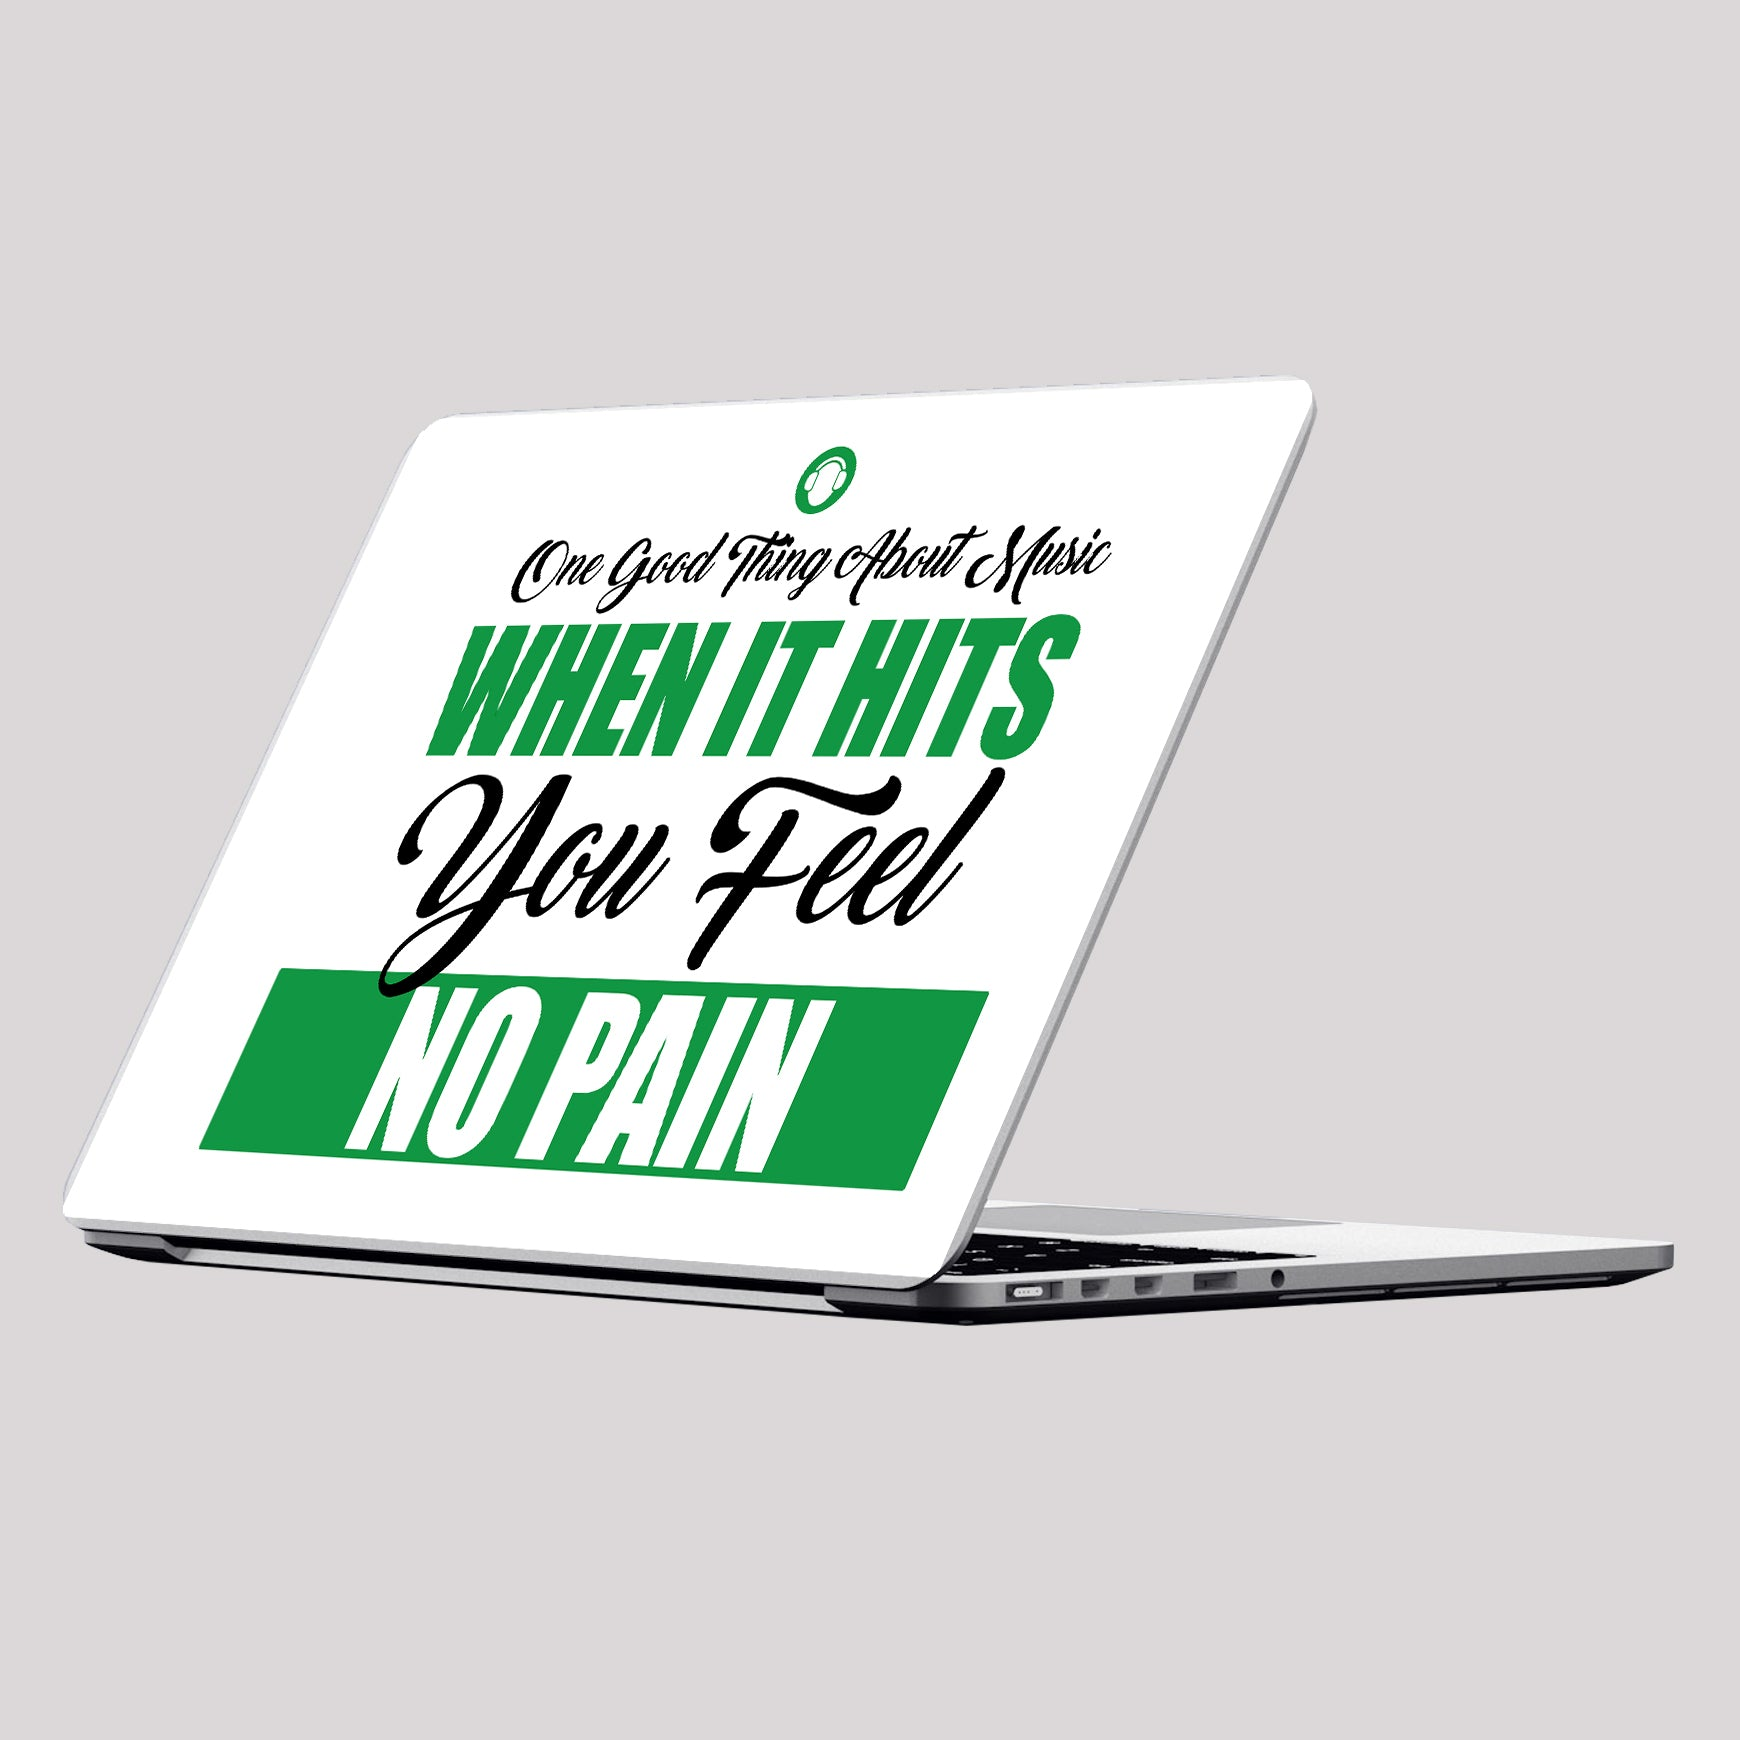 One Good Thing About Music Laptop Skin/Decal - GET FRESH MARKETPLACE